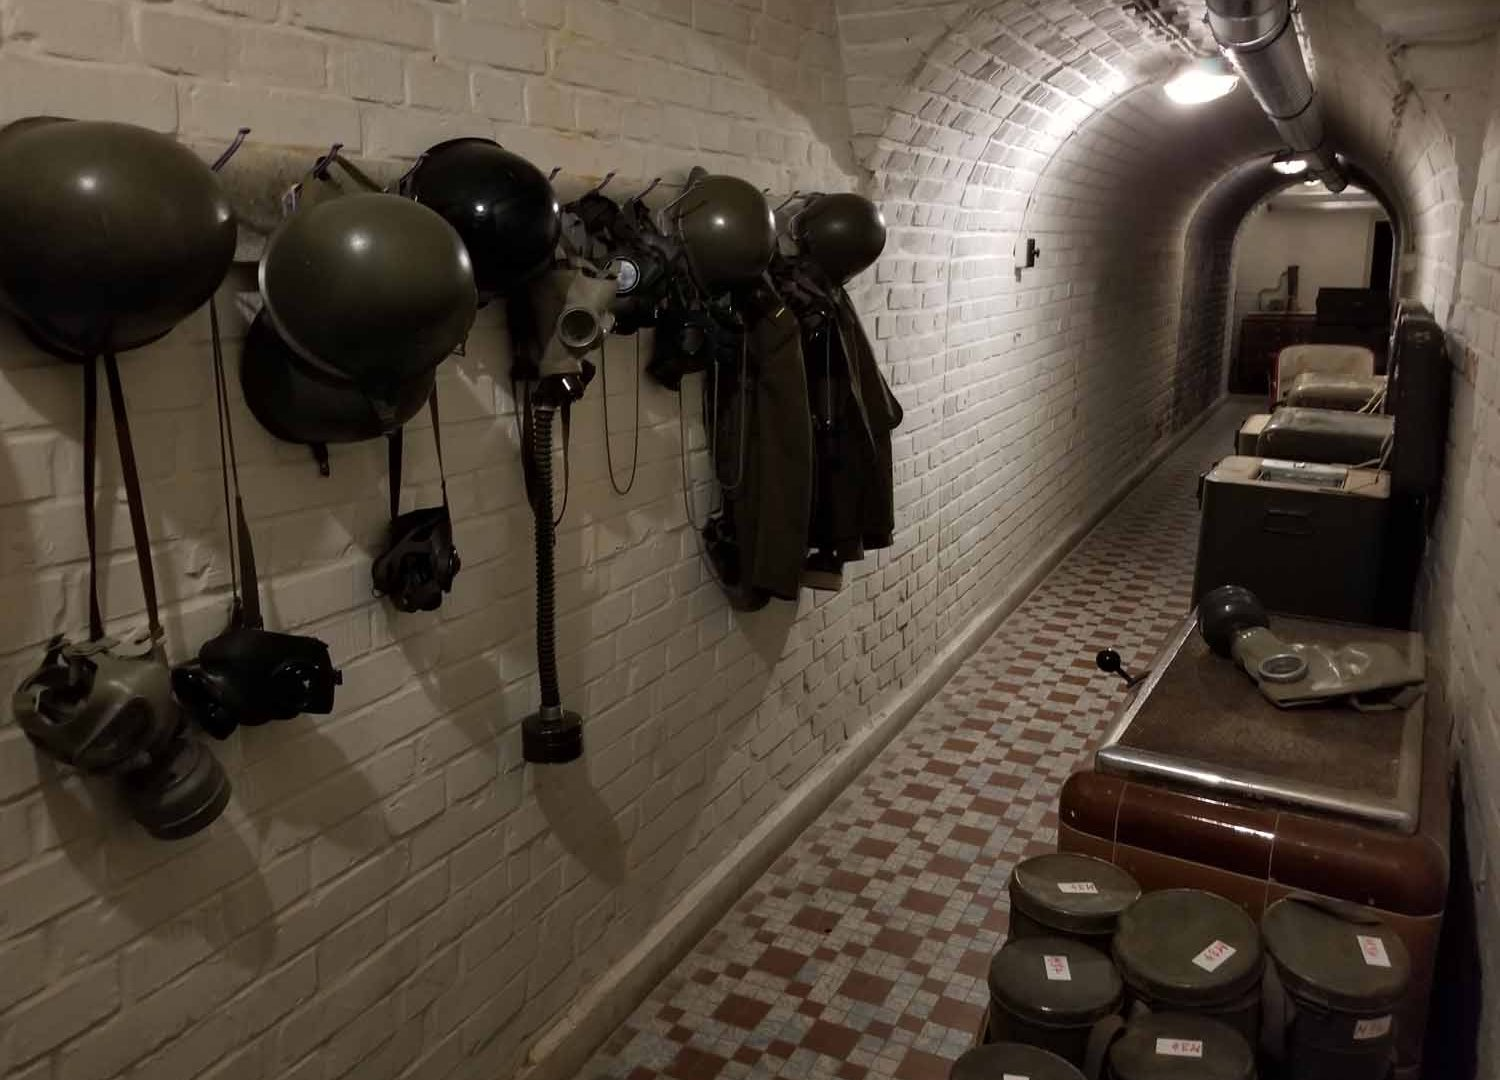 Czech-Republic-Brno-10-Z-Bunker-Gas-Masks